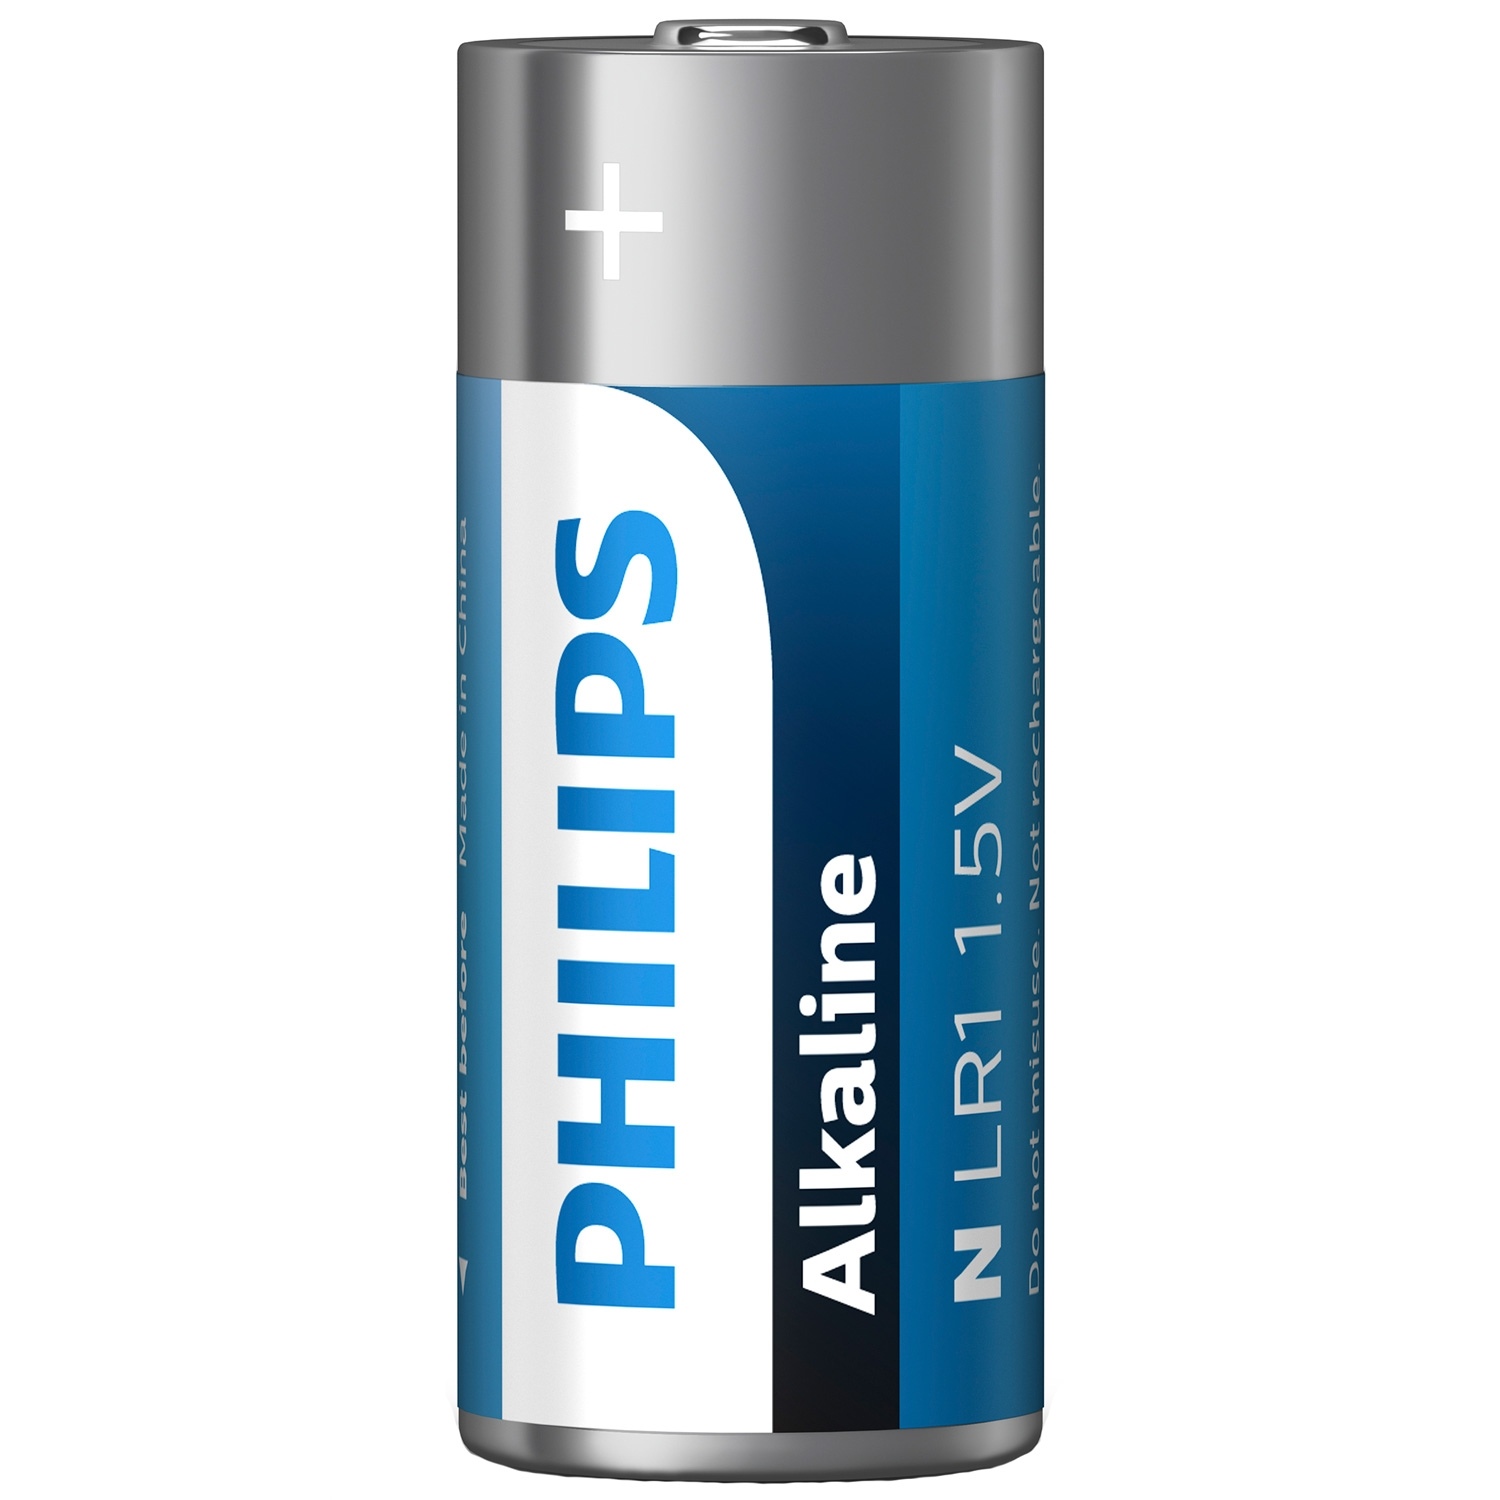 Philips Alkaline LR1 1.5V Batteri | Brands, Batterier, Mixed | Intimast.se - Sexleksaker